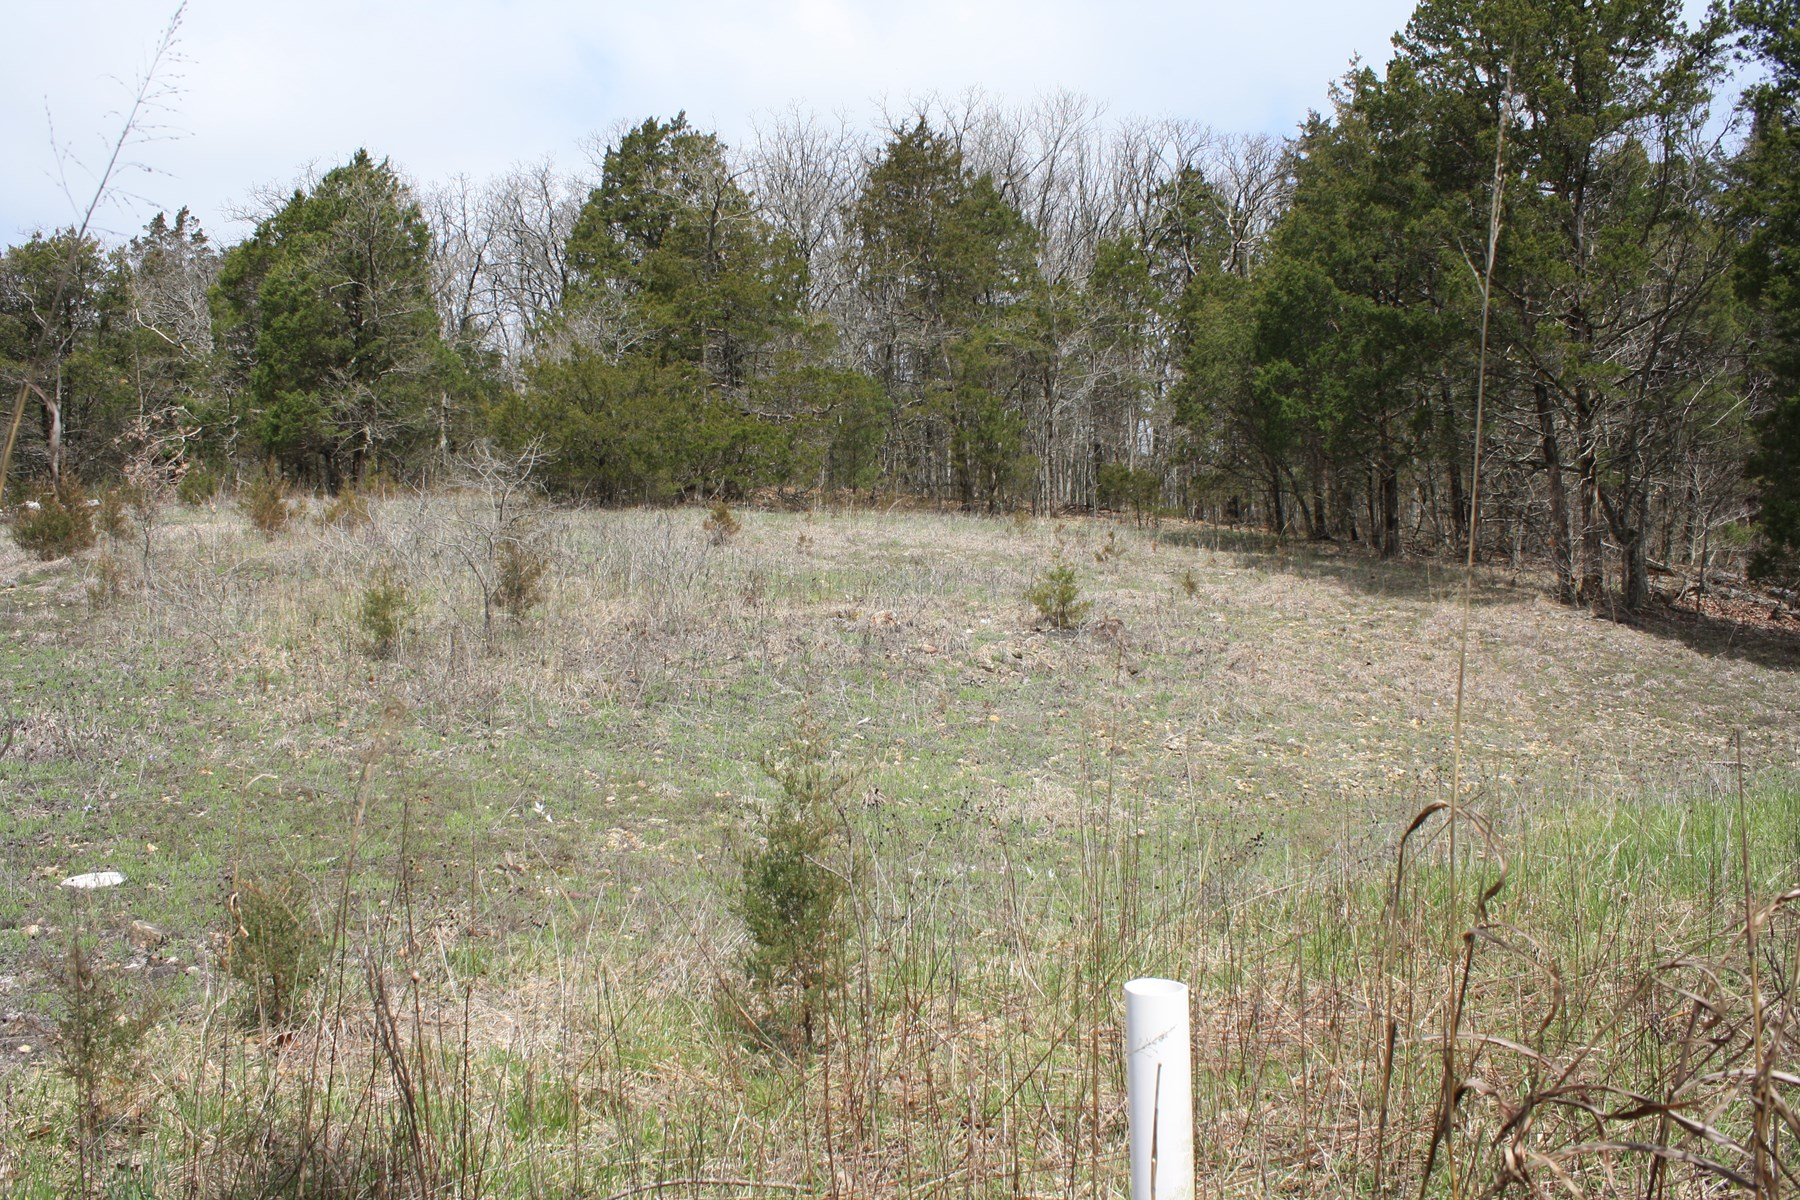 Jefferson County Missouri Land for sale  11.58 acres